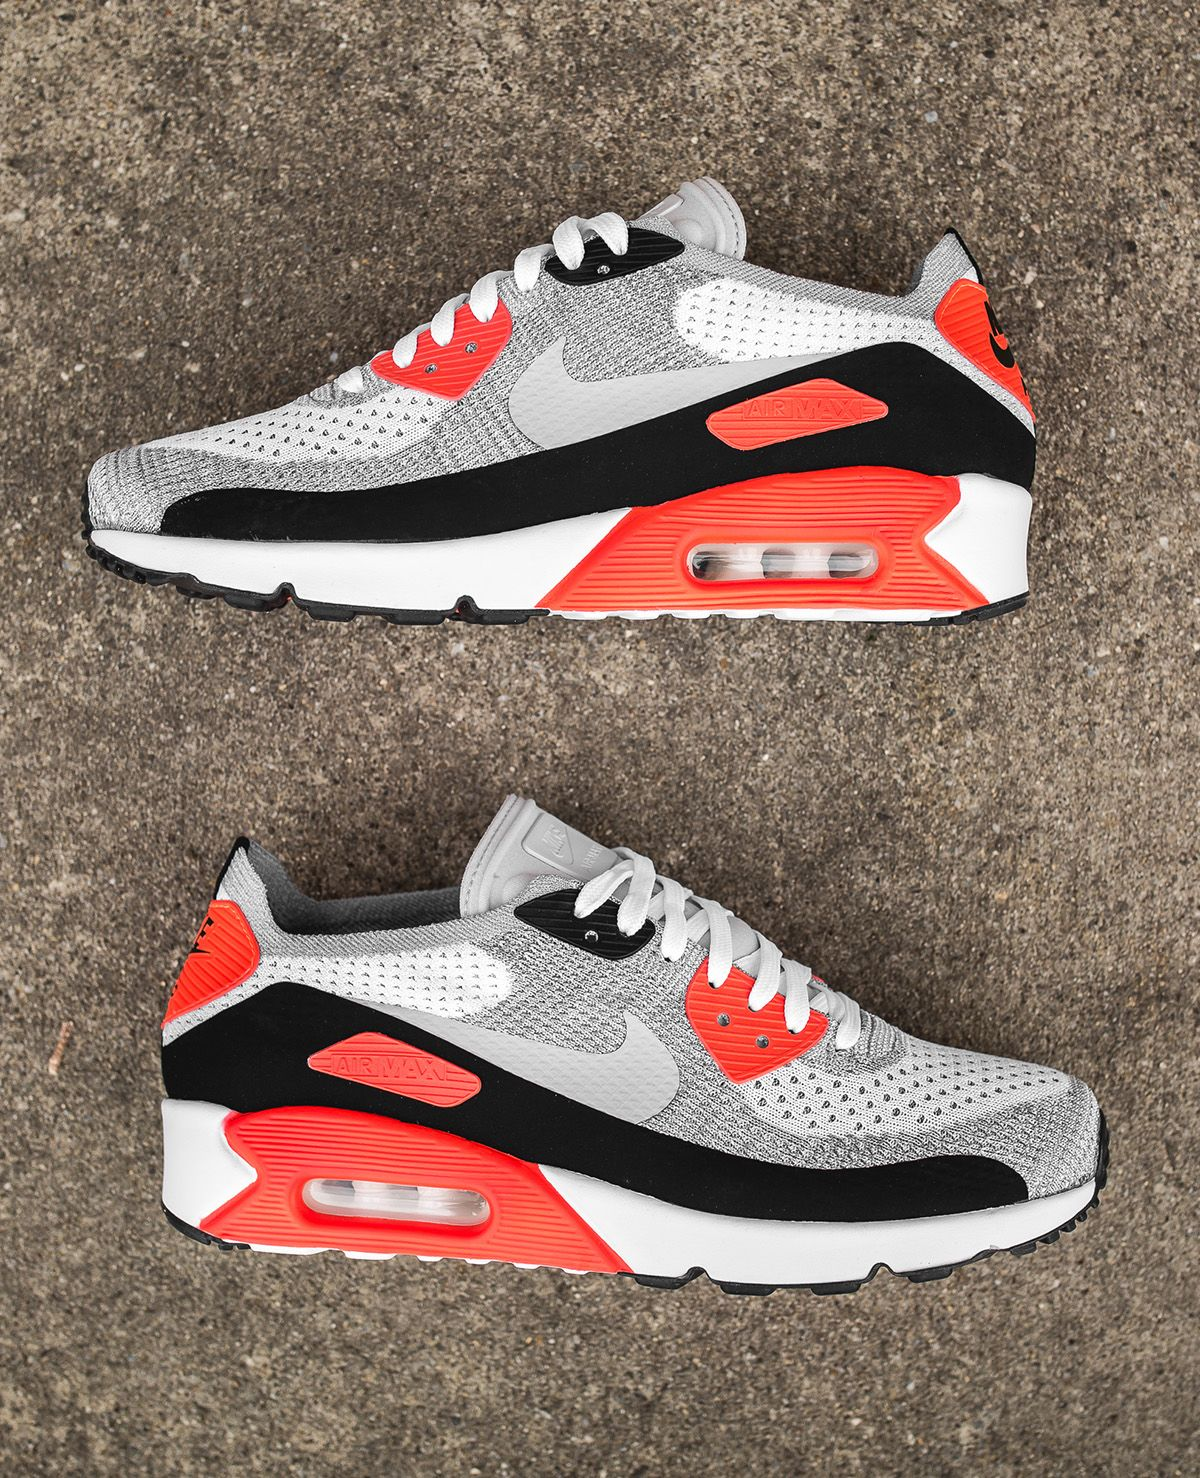 Nike Air Max 90 Ultra 2.0 Flyknit 'Infrared' 10 Detailed Pictures - EU Kicks: Sneaker Magazine